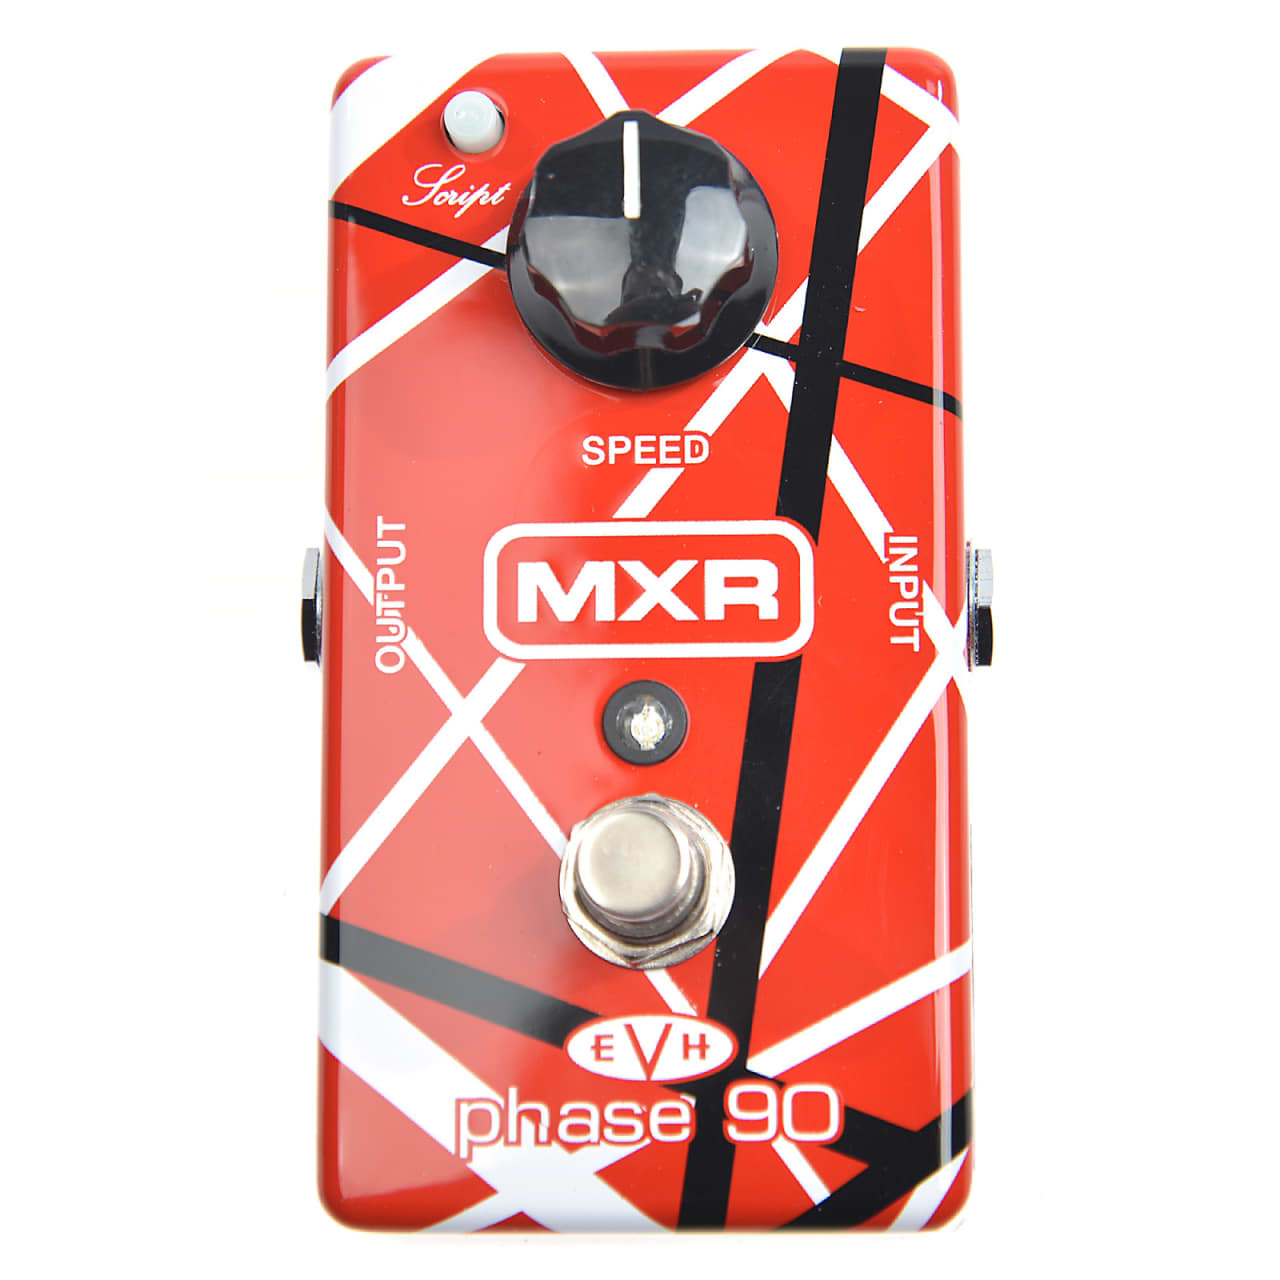 mxr evh90 eddie van halen signature phase 90 reverb. Black Bedroom Furniture Sets. Home Design Ideas